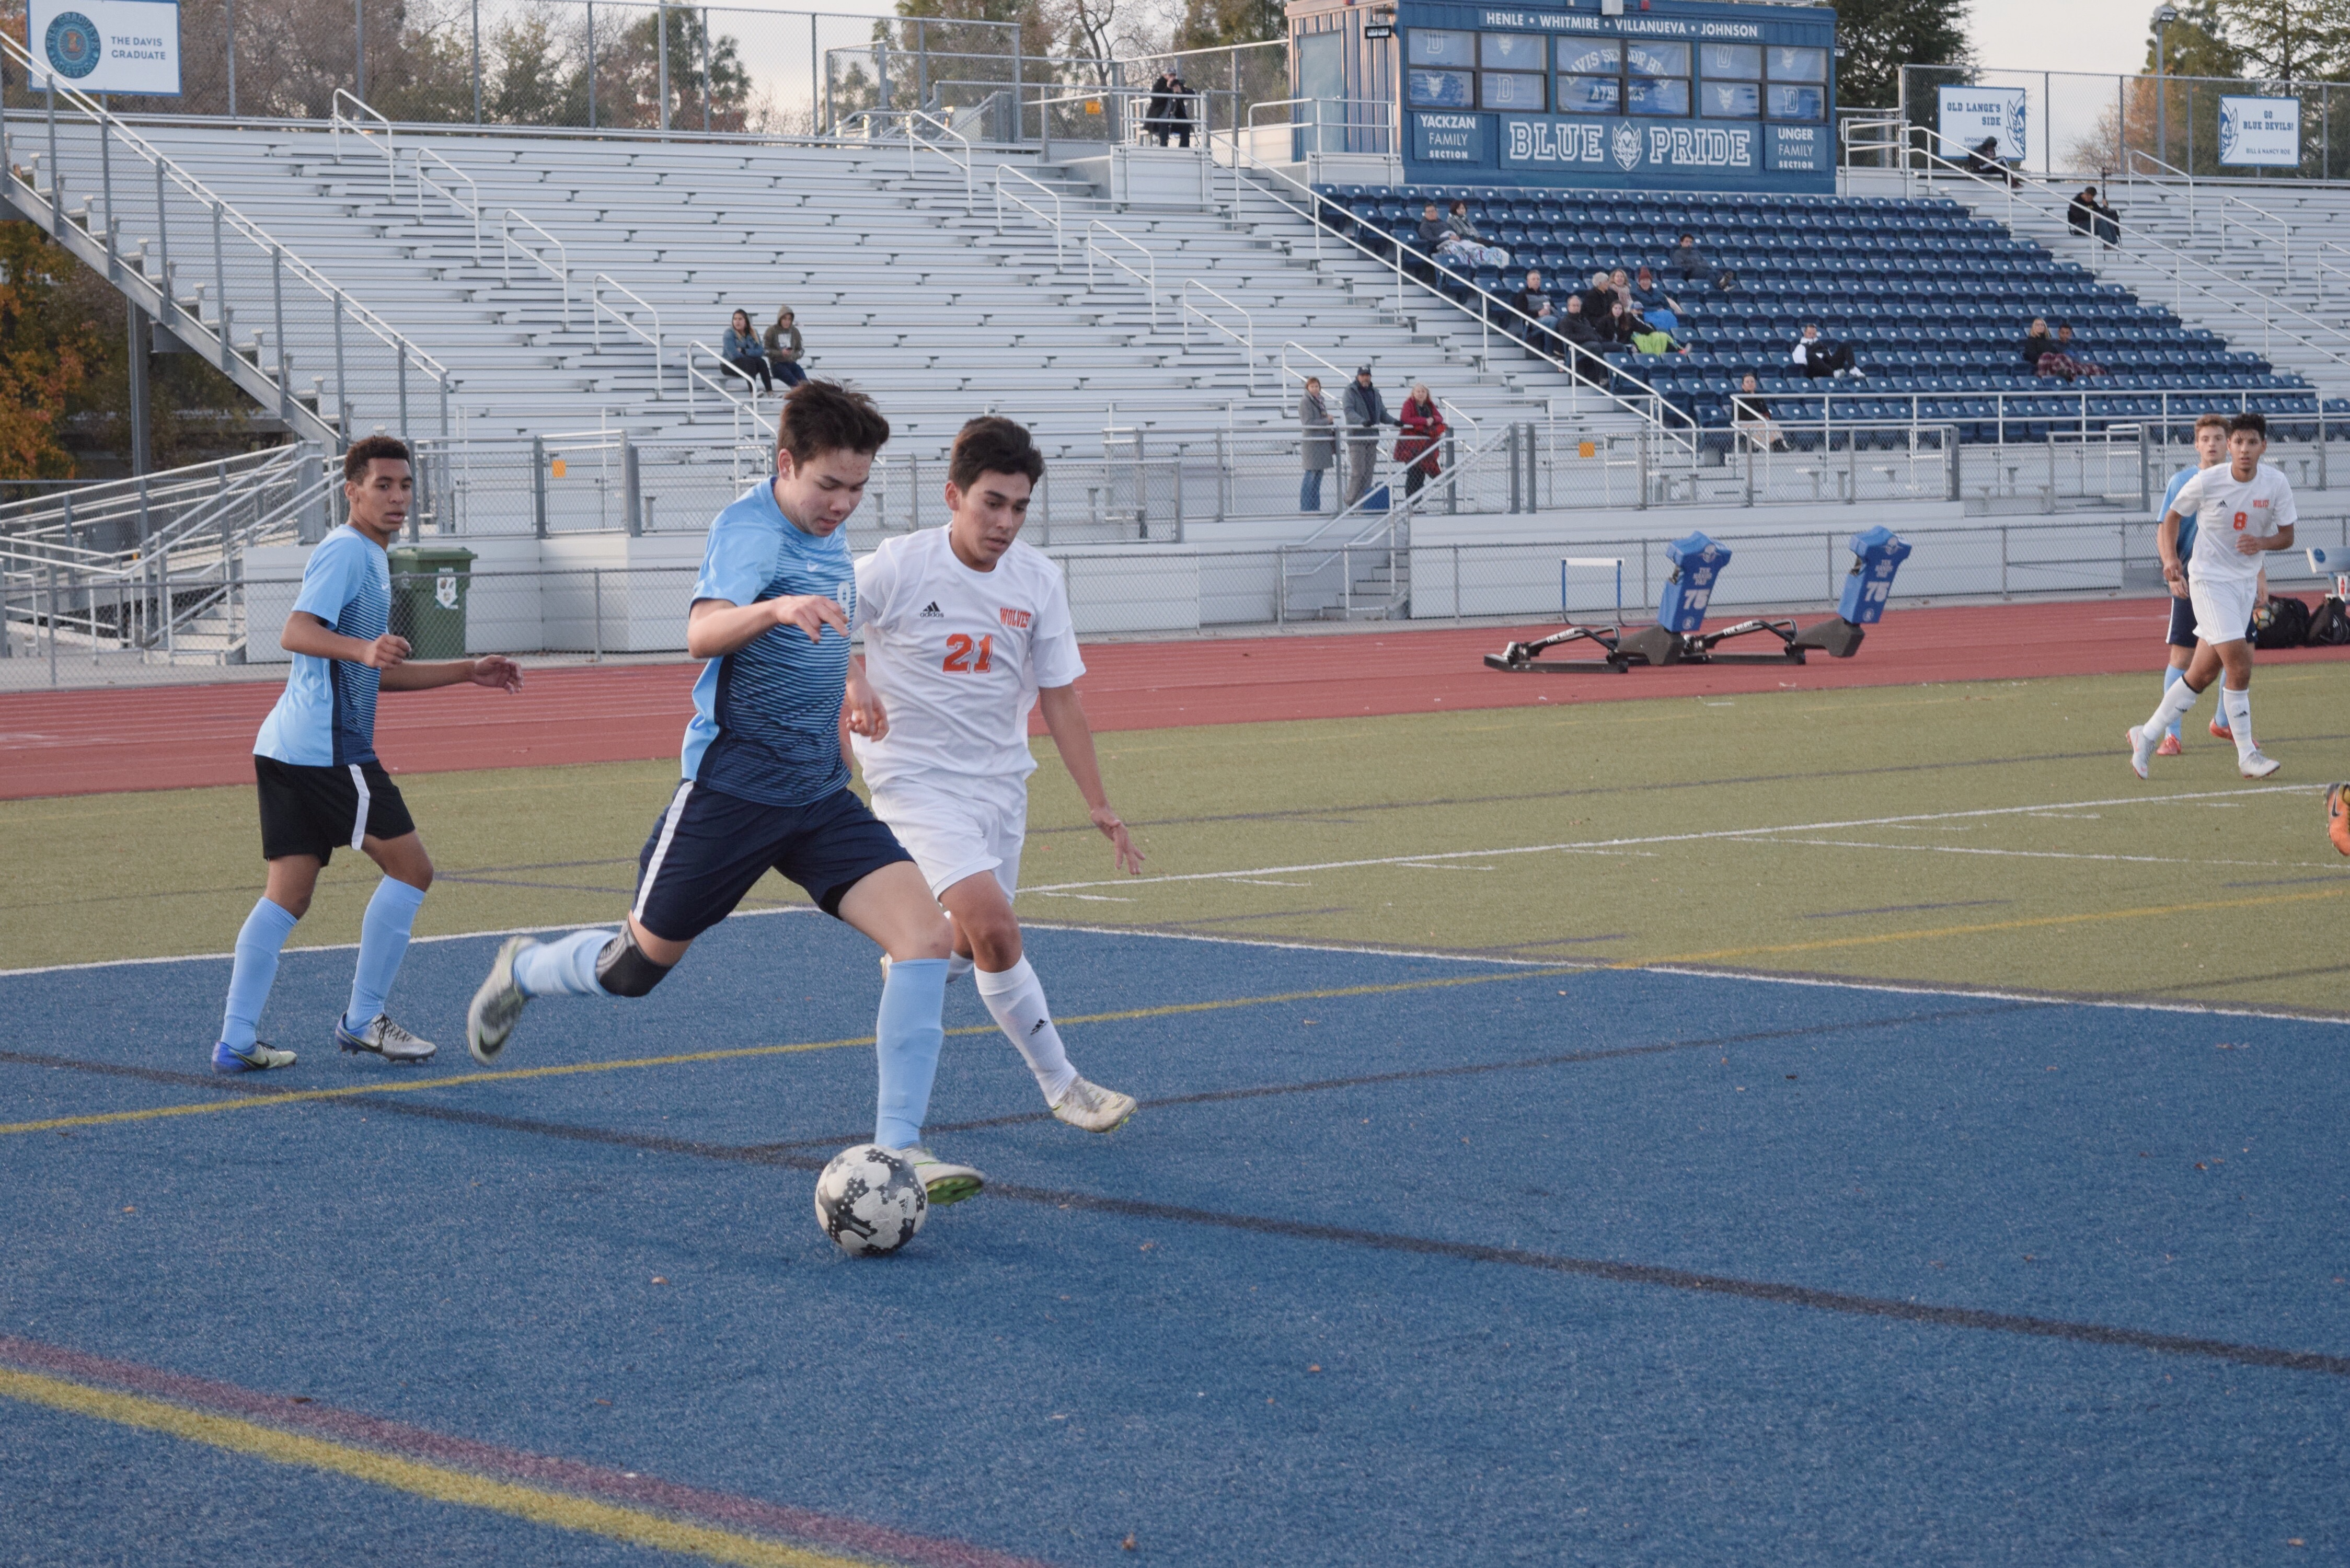 Senior Thomas Venner prepares to clear the ball.